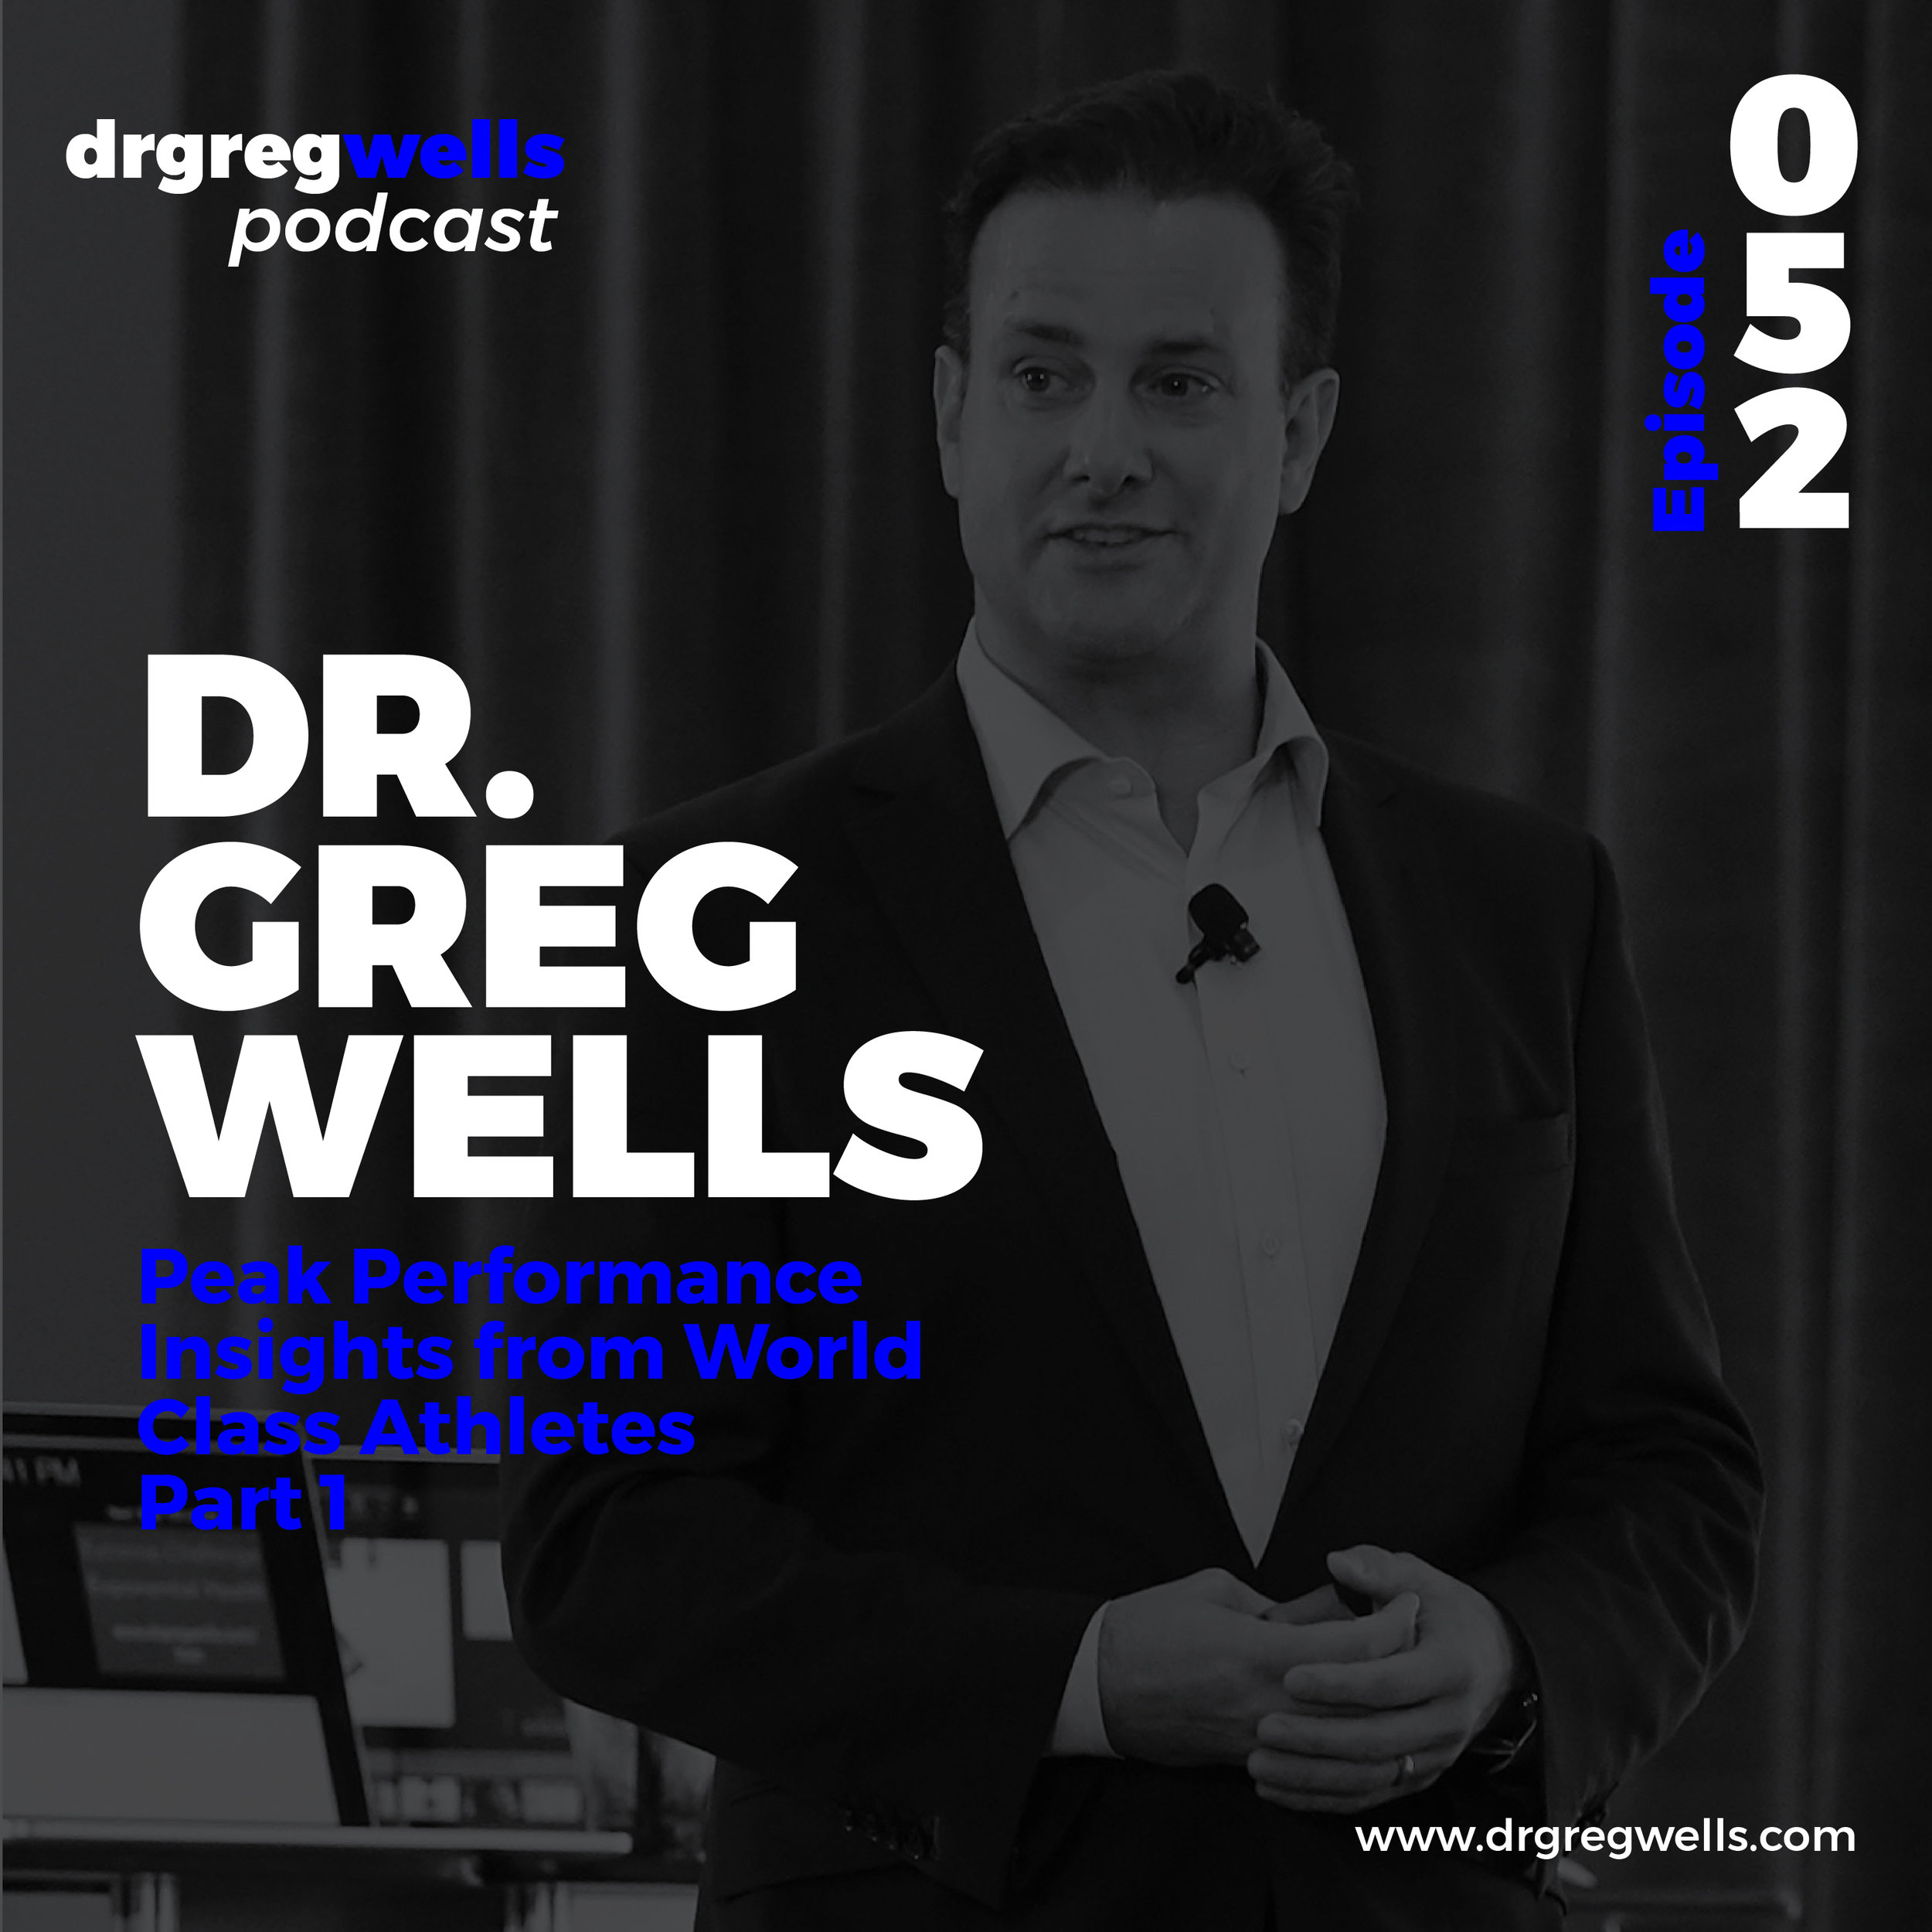 Dr Greg Wells Podcast Guest EP 52-54-01.jpg